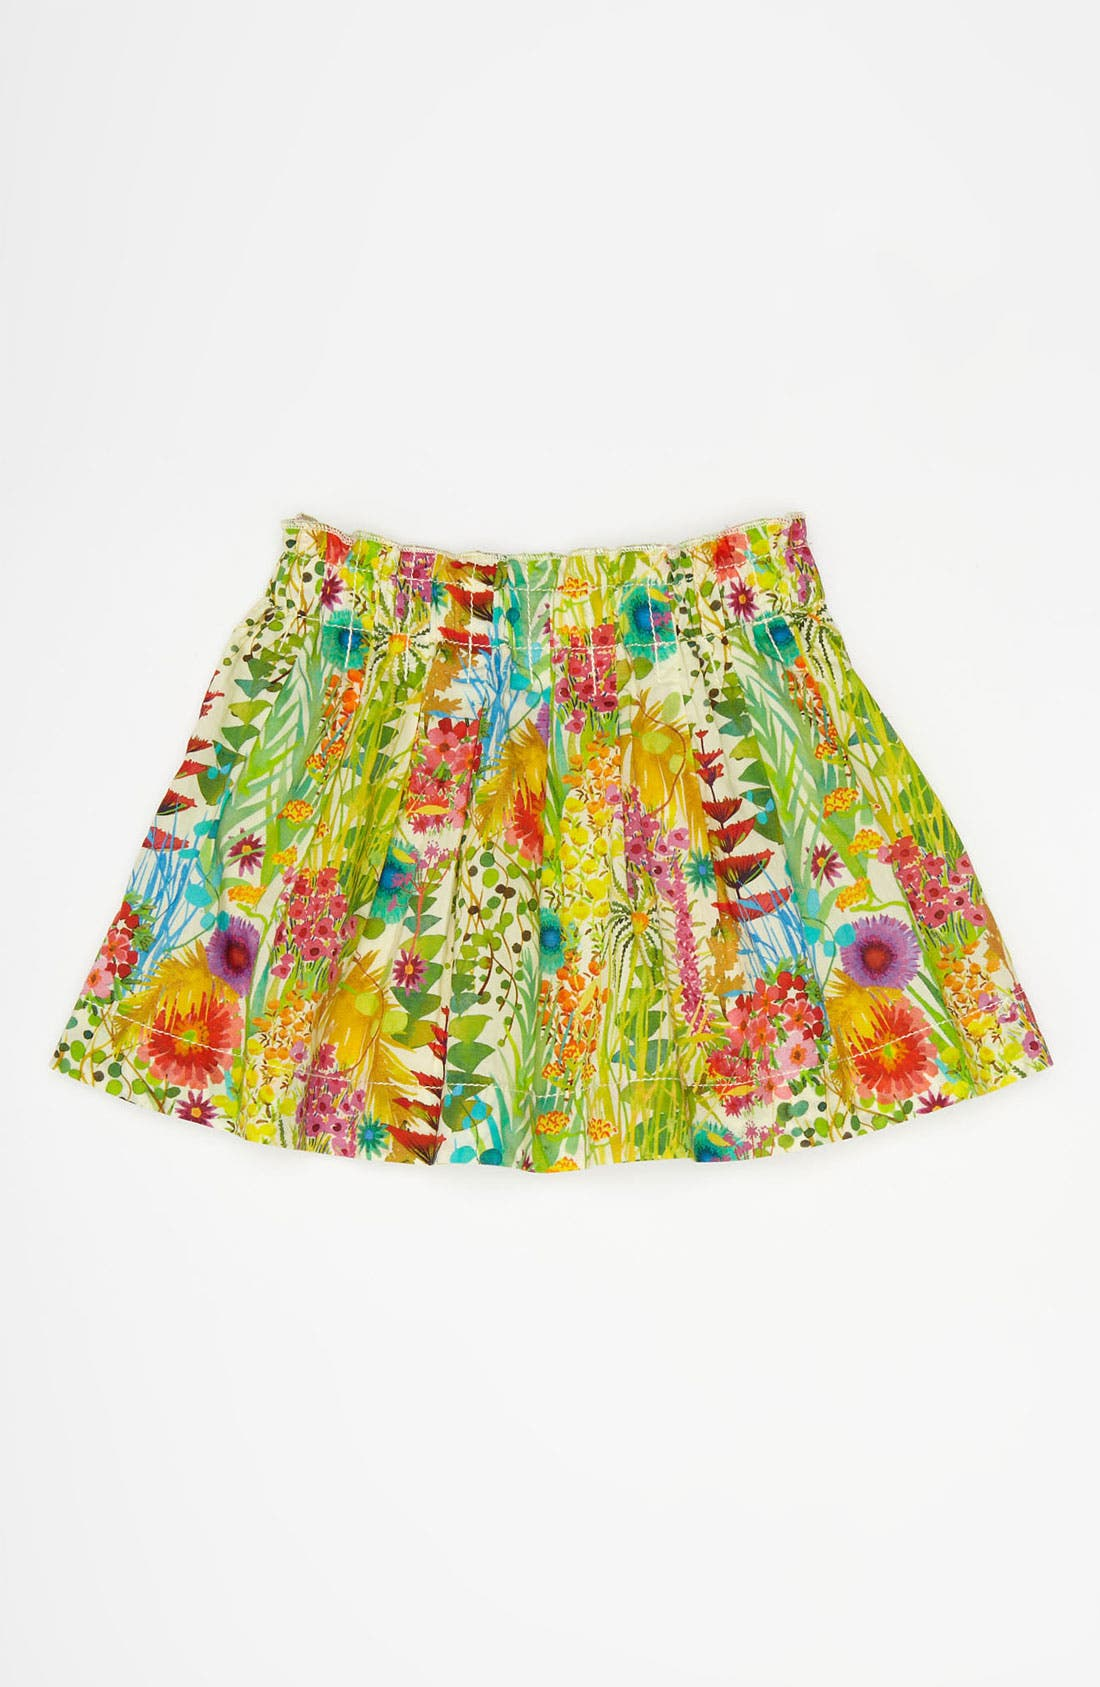 Alternate Image 1 Selected - Peek 'Wildflower' Skirt (Baby)